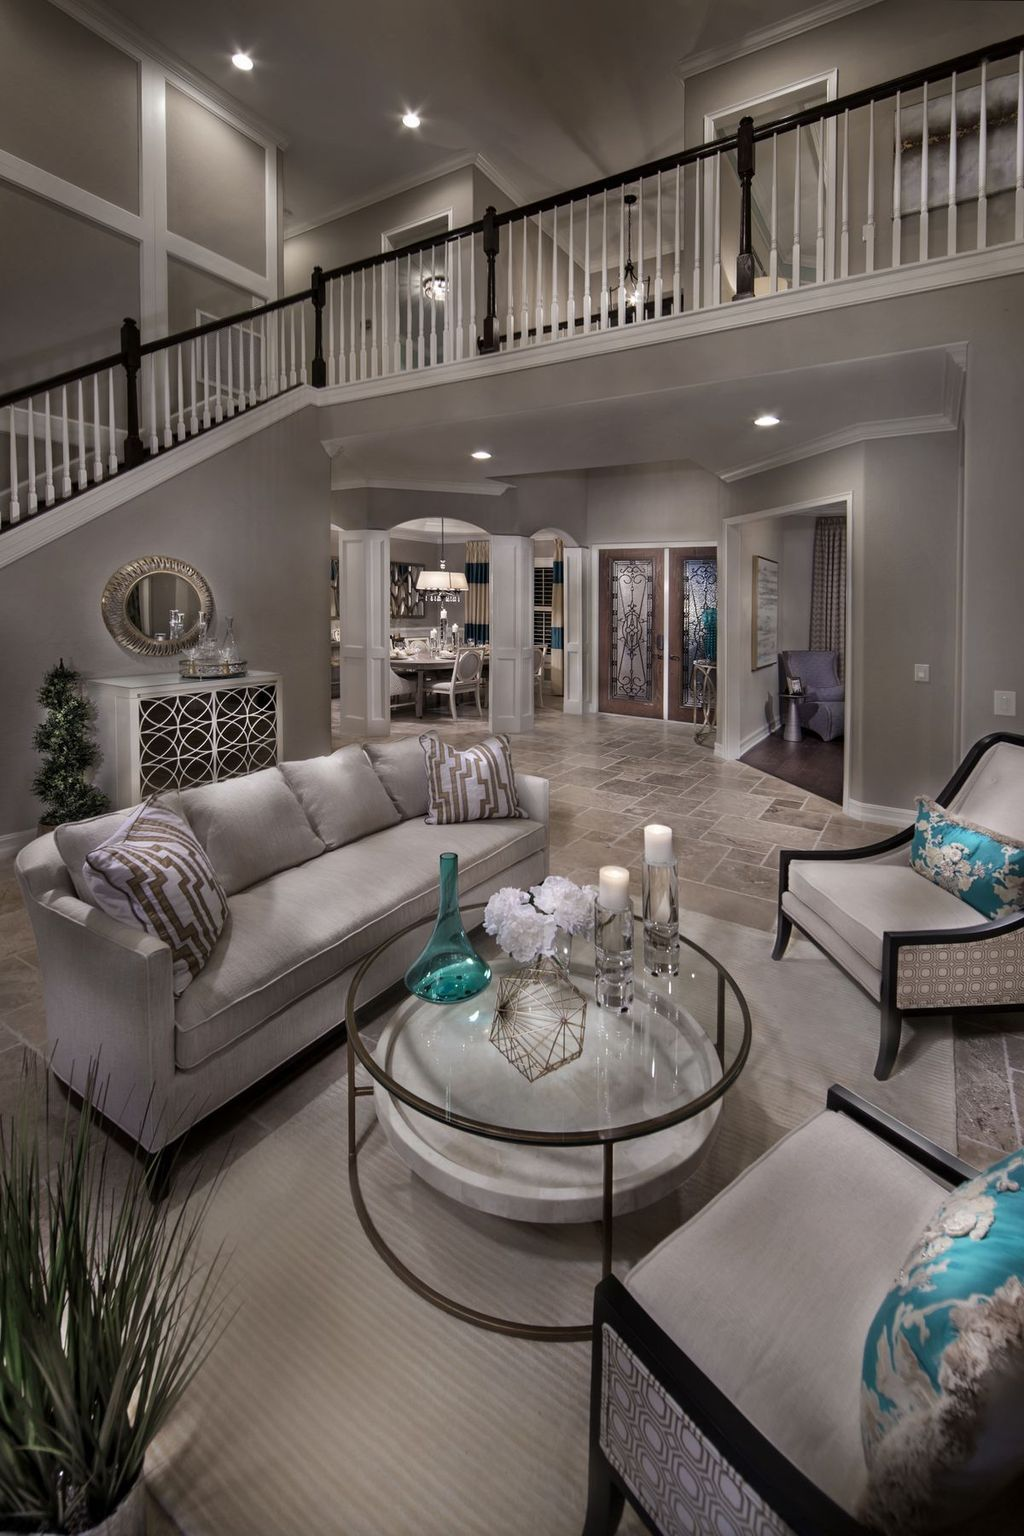 Nice 50 Luxury Home Decor Ideas More At Https Homishome Com 2019 05 09 50 Luxury Home Decor Ideas Luxury Home Decor Home New Homes